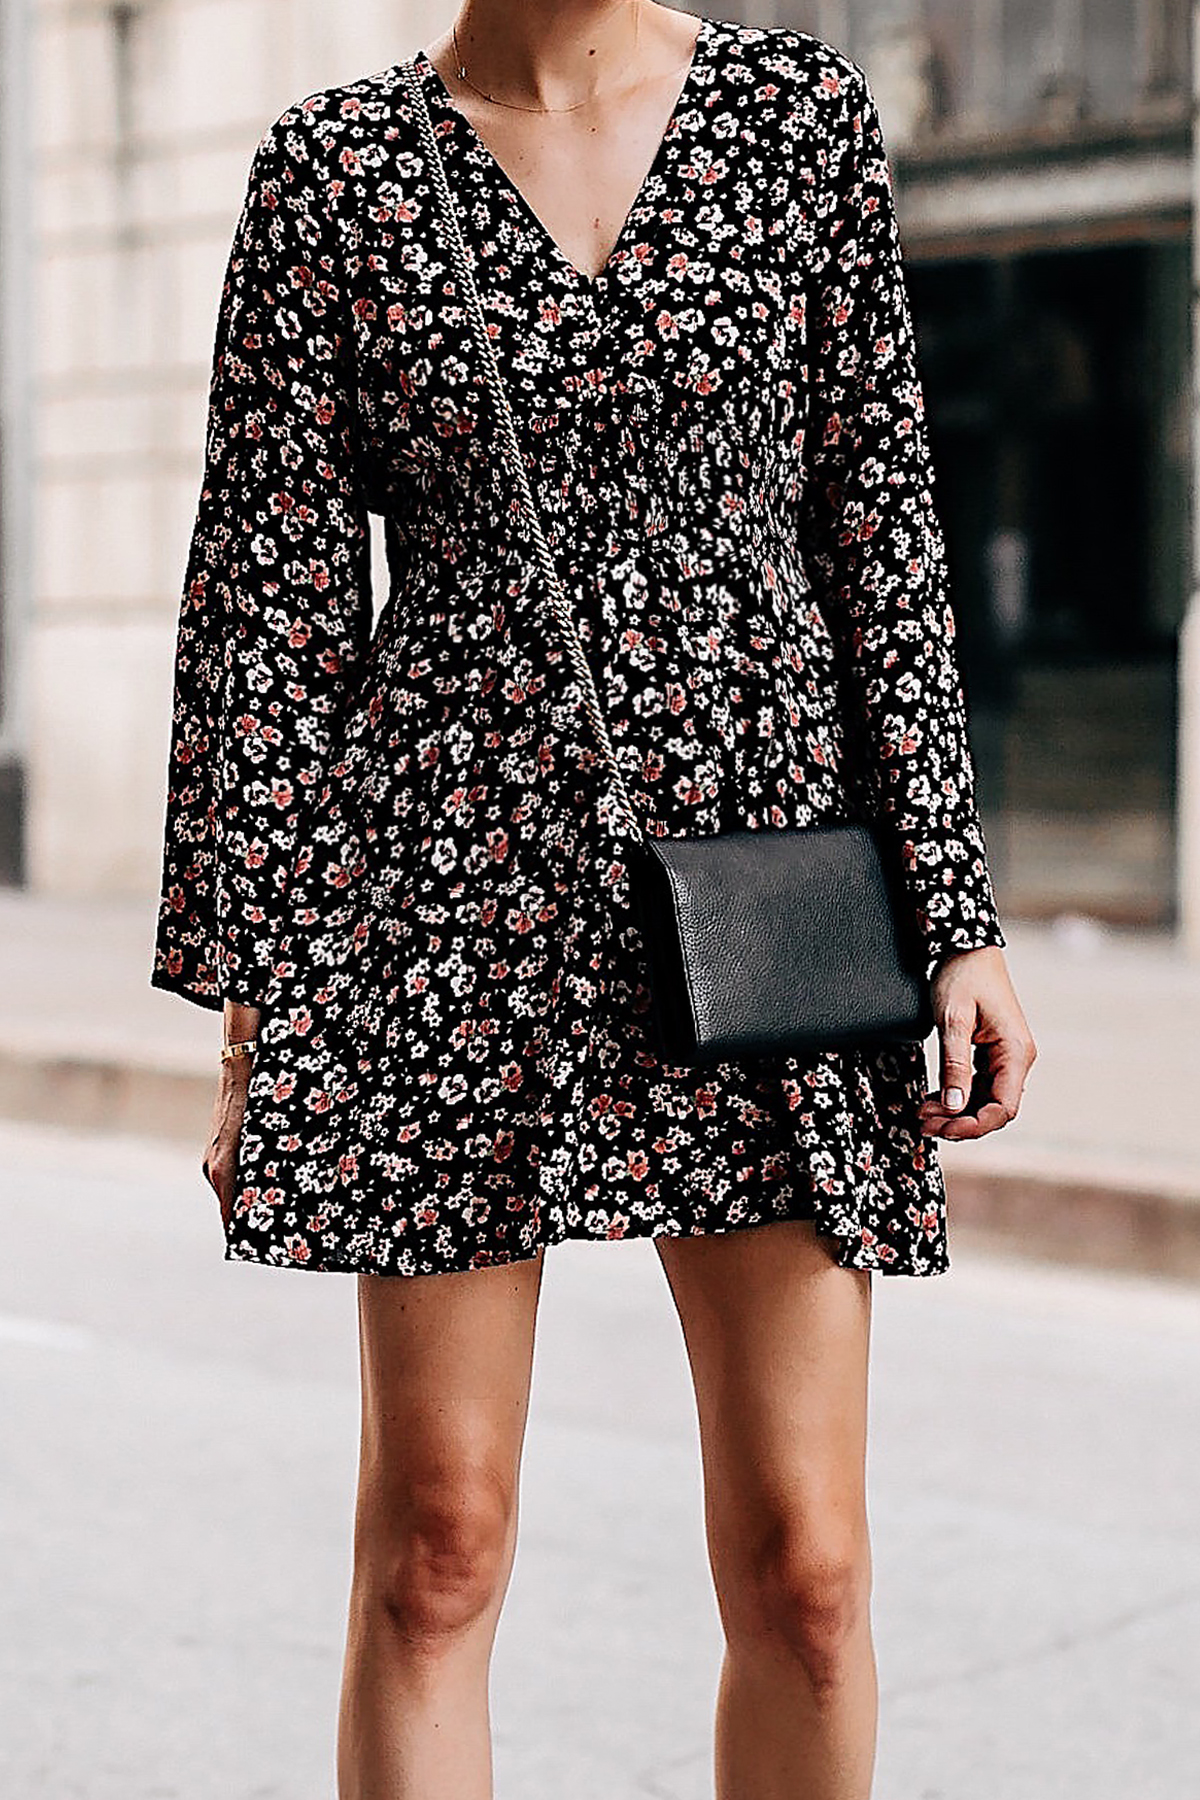 Blonde Woman Wearing Black Floral Long Sleeve Mini Dress Gold Chain Black Crossbody Handbag Fashion Jackson San Diego Fashion Blogger Street Style